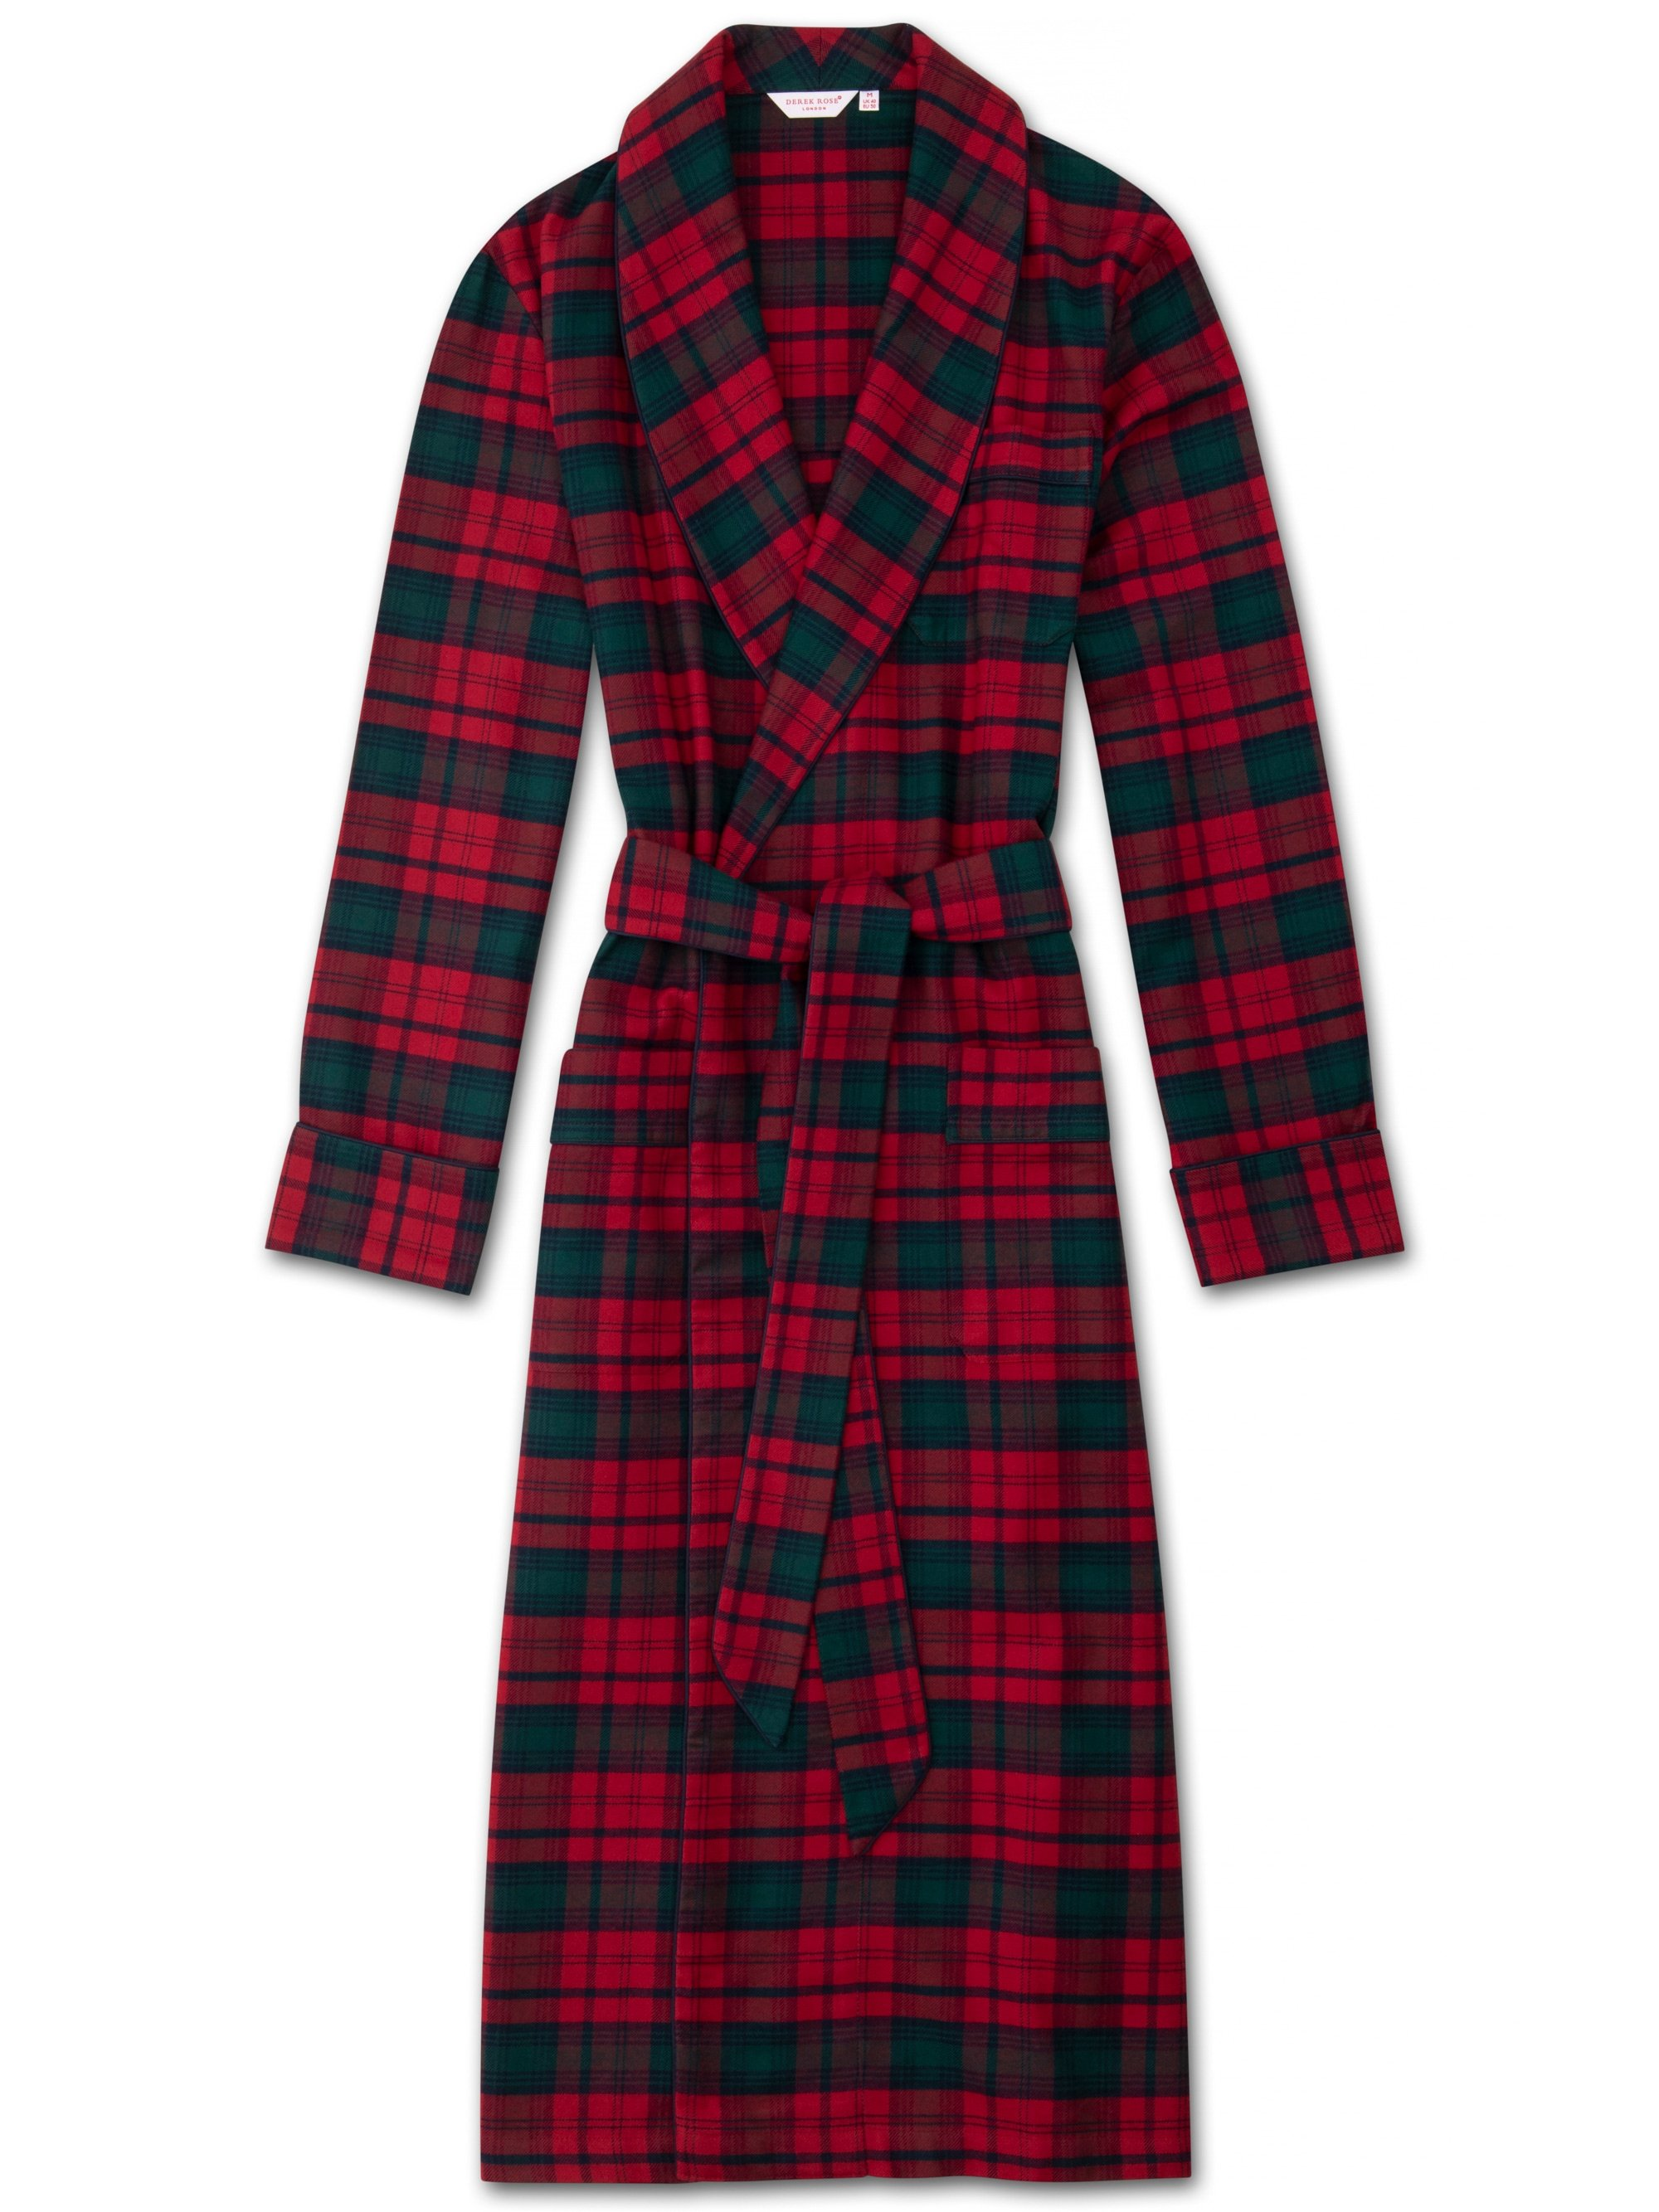 Men's Piped Dressing Gown Kelburn 9 Brushed Cotton Check Red